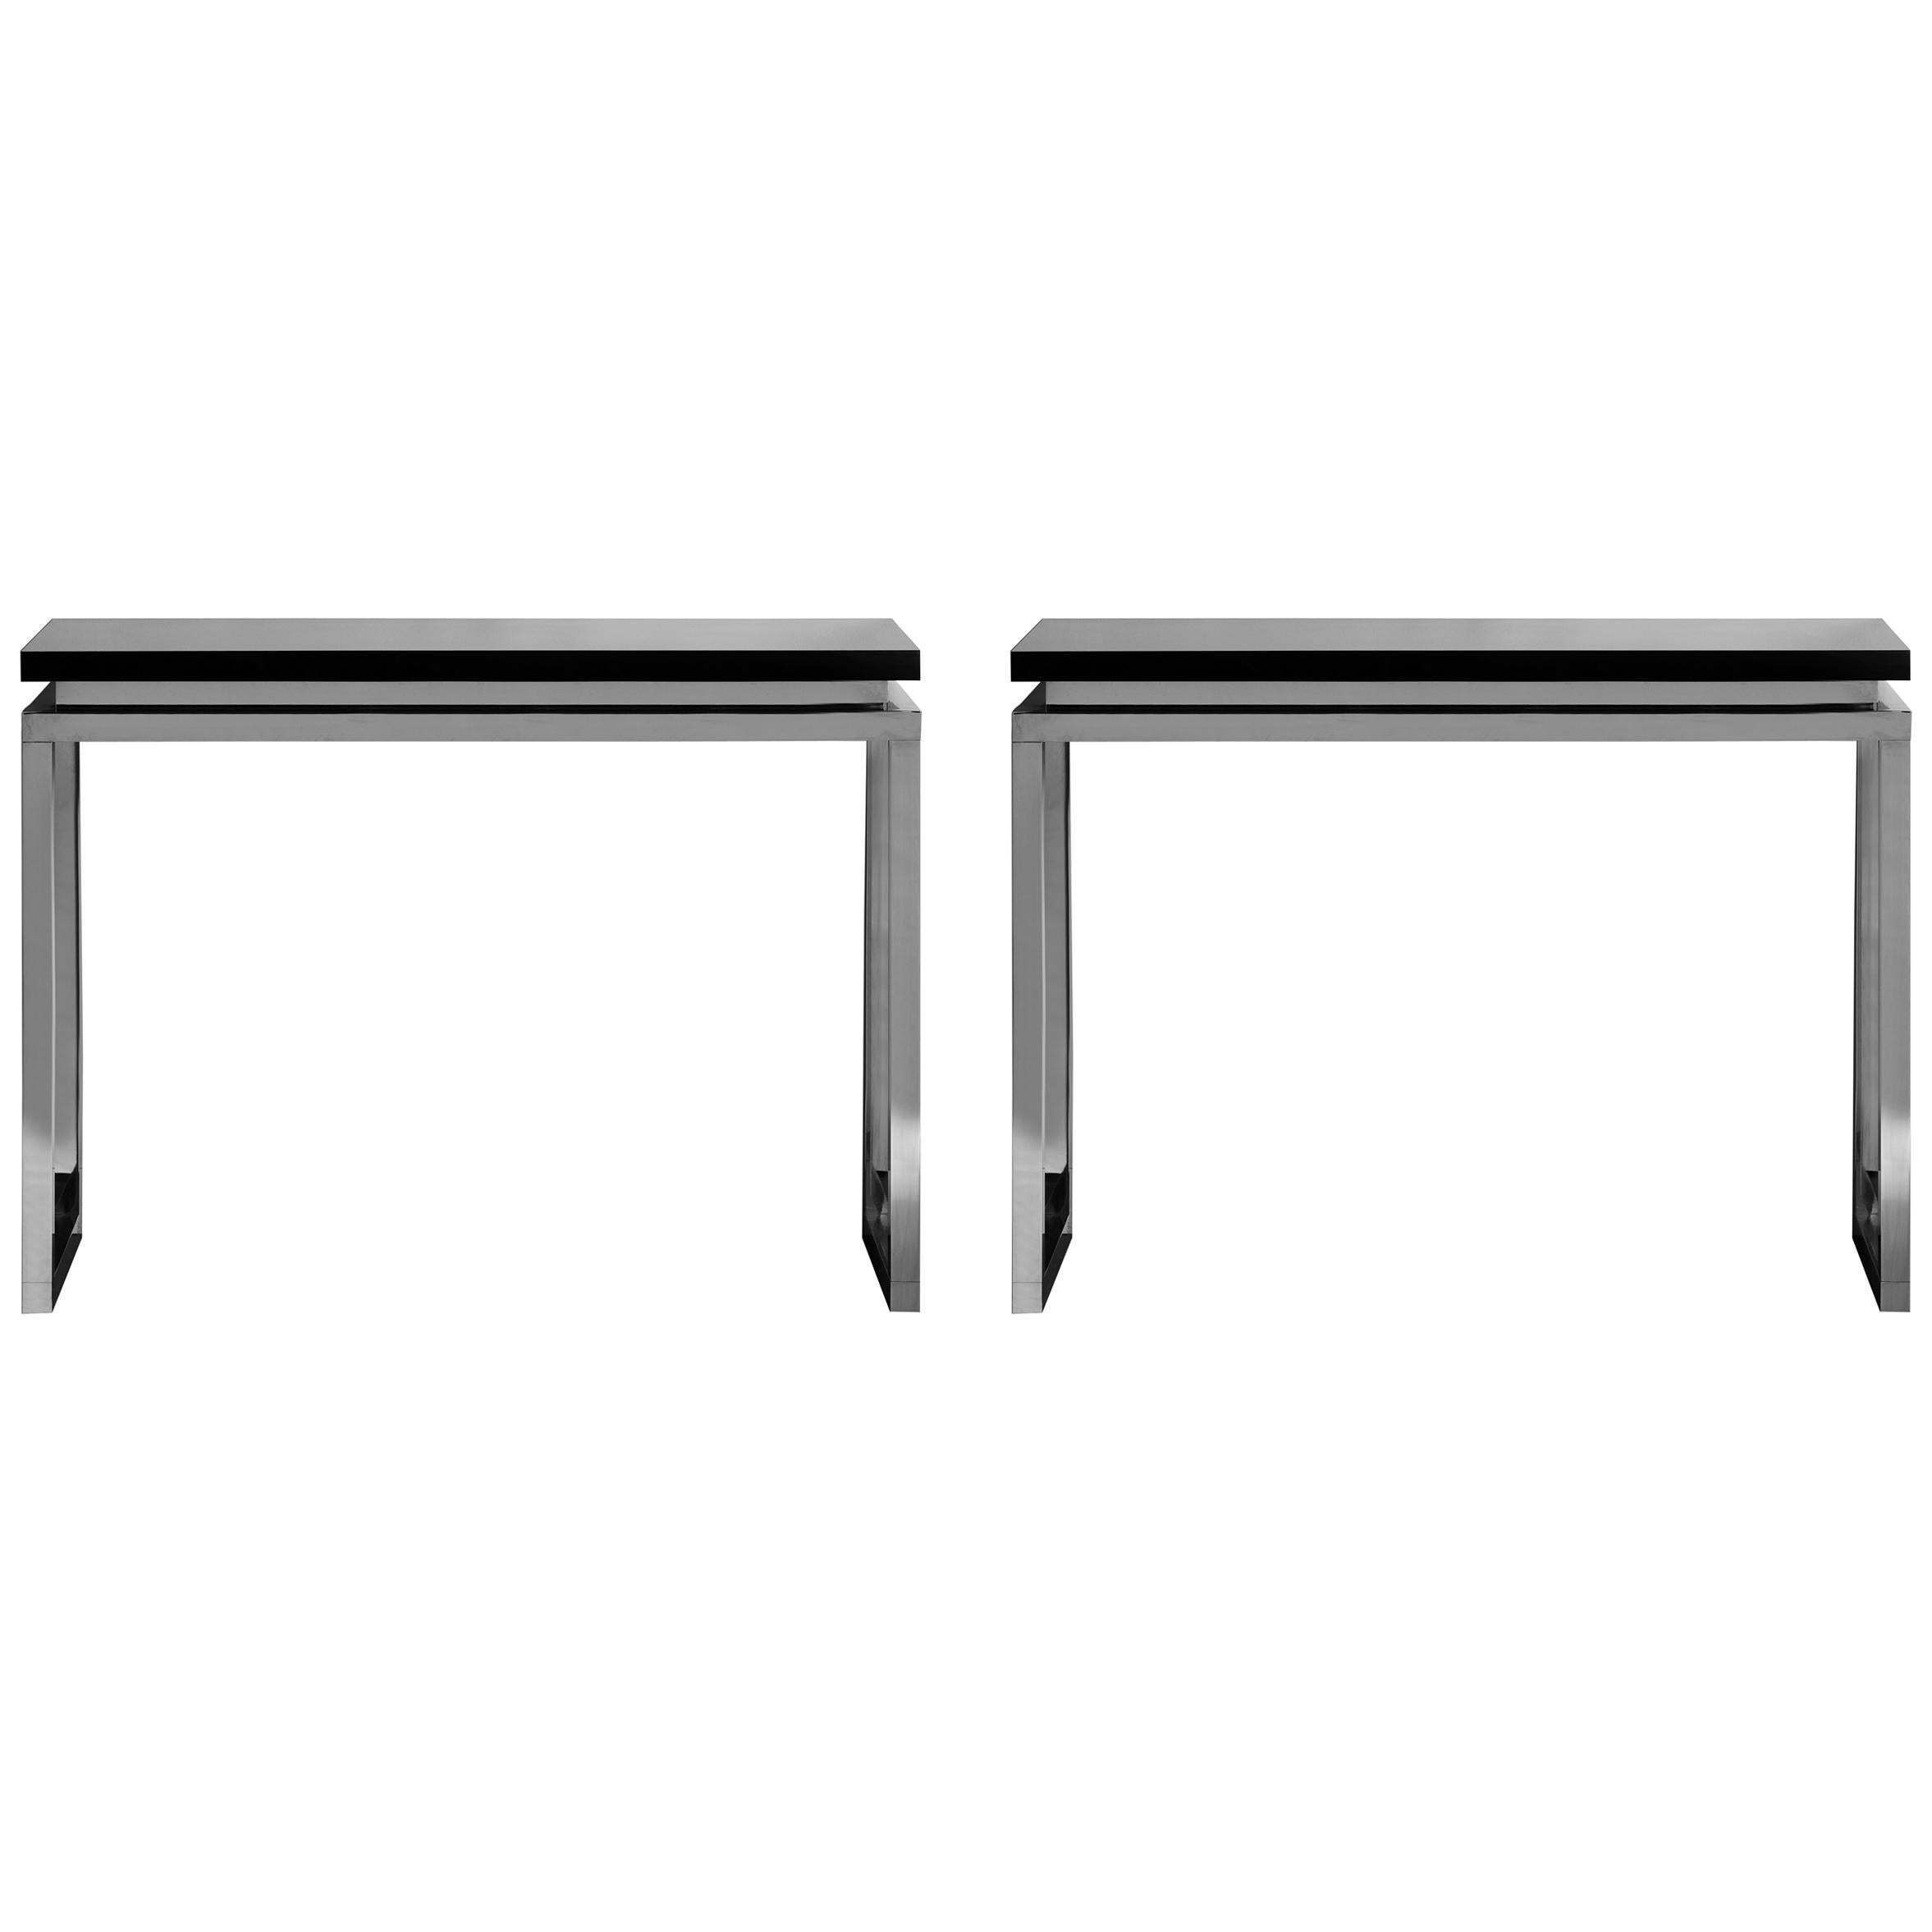 Pair of Steel Consoles by Studio Glustin at cost price.